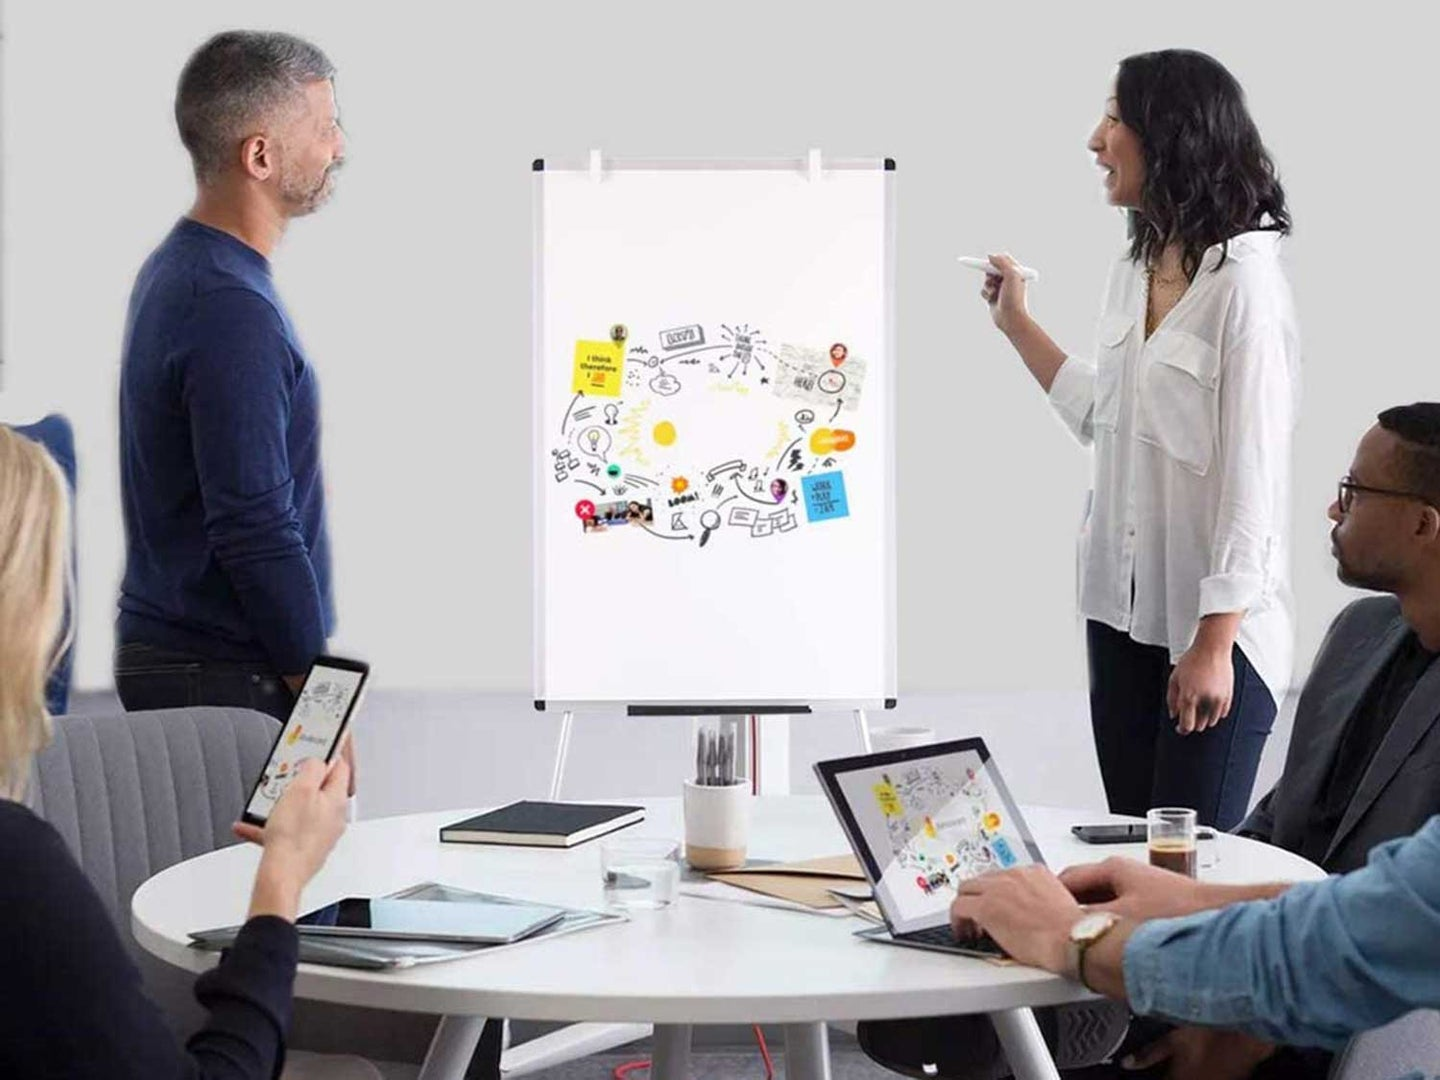 Giving presentation with easel.